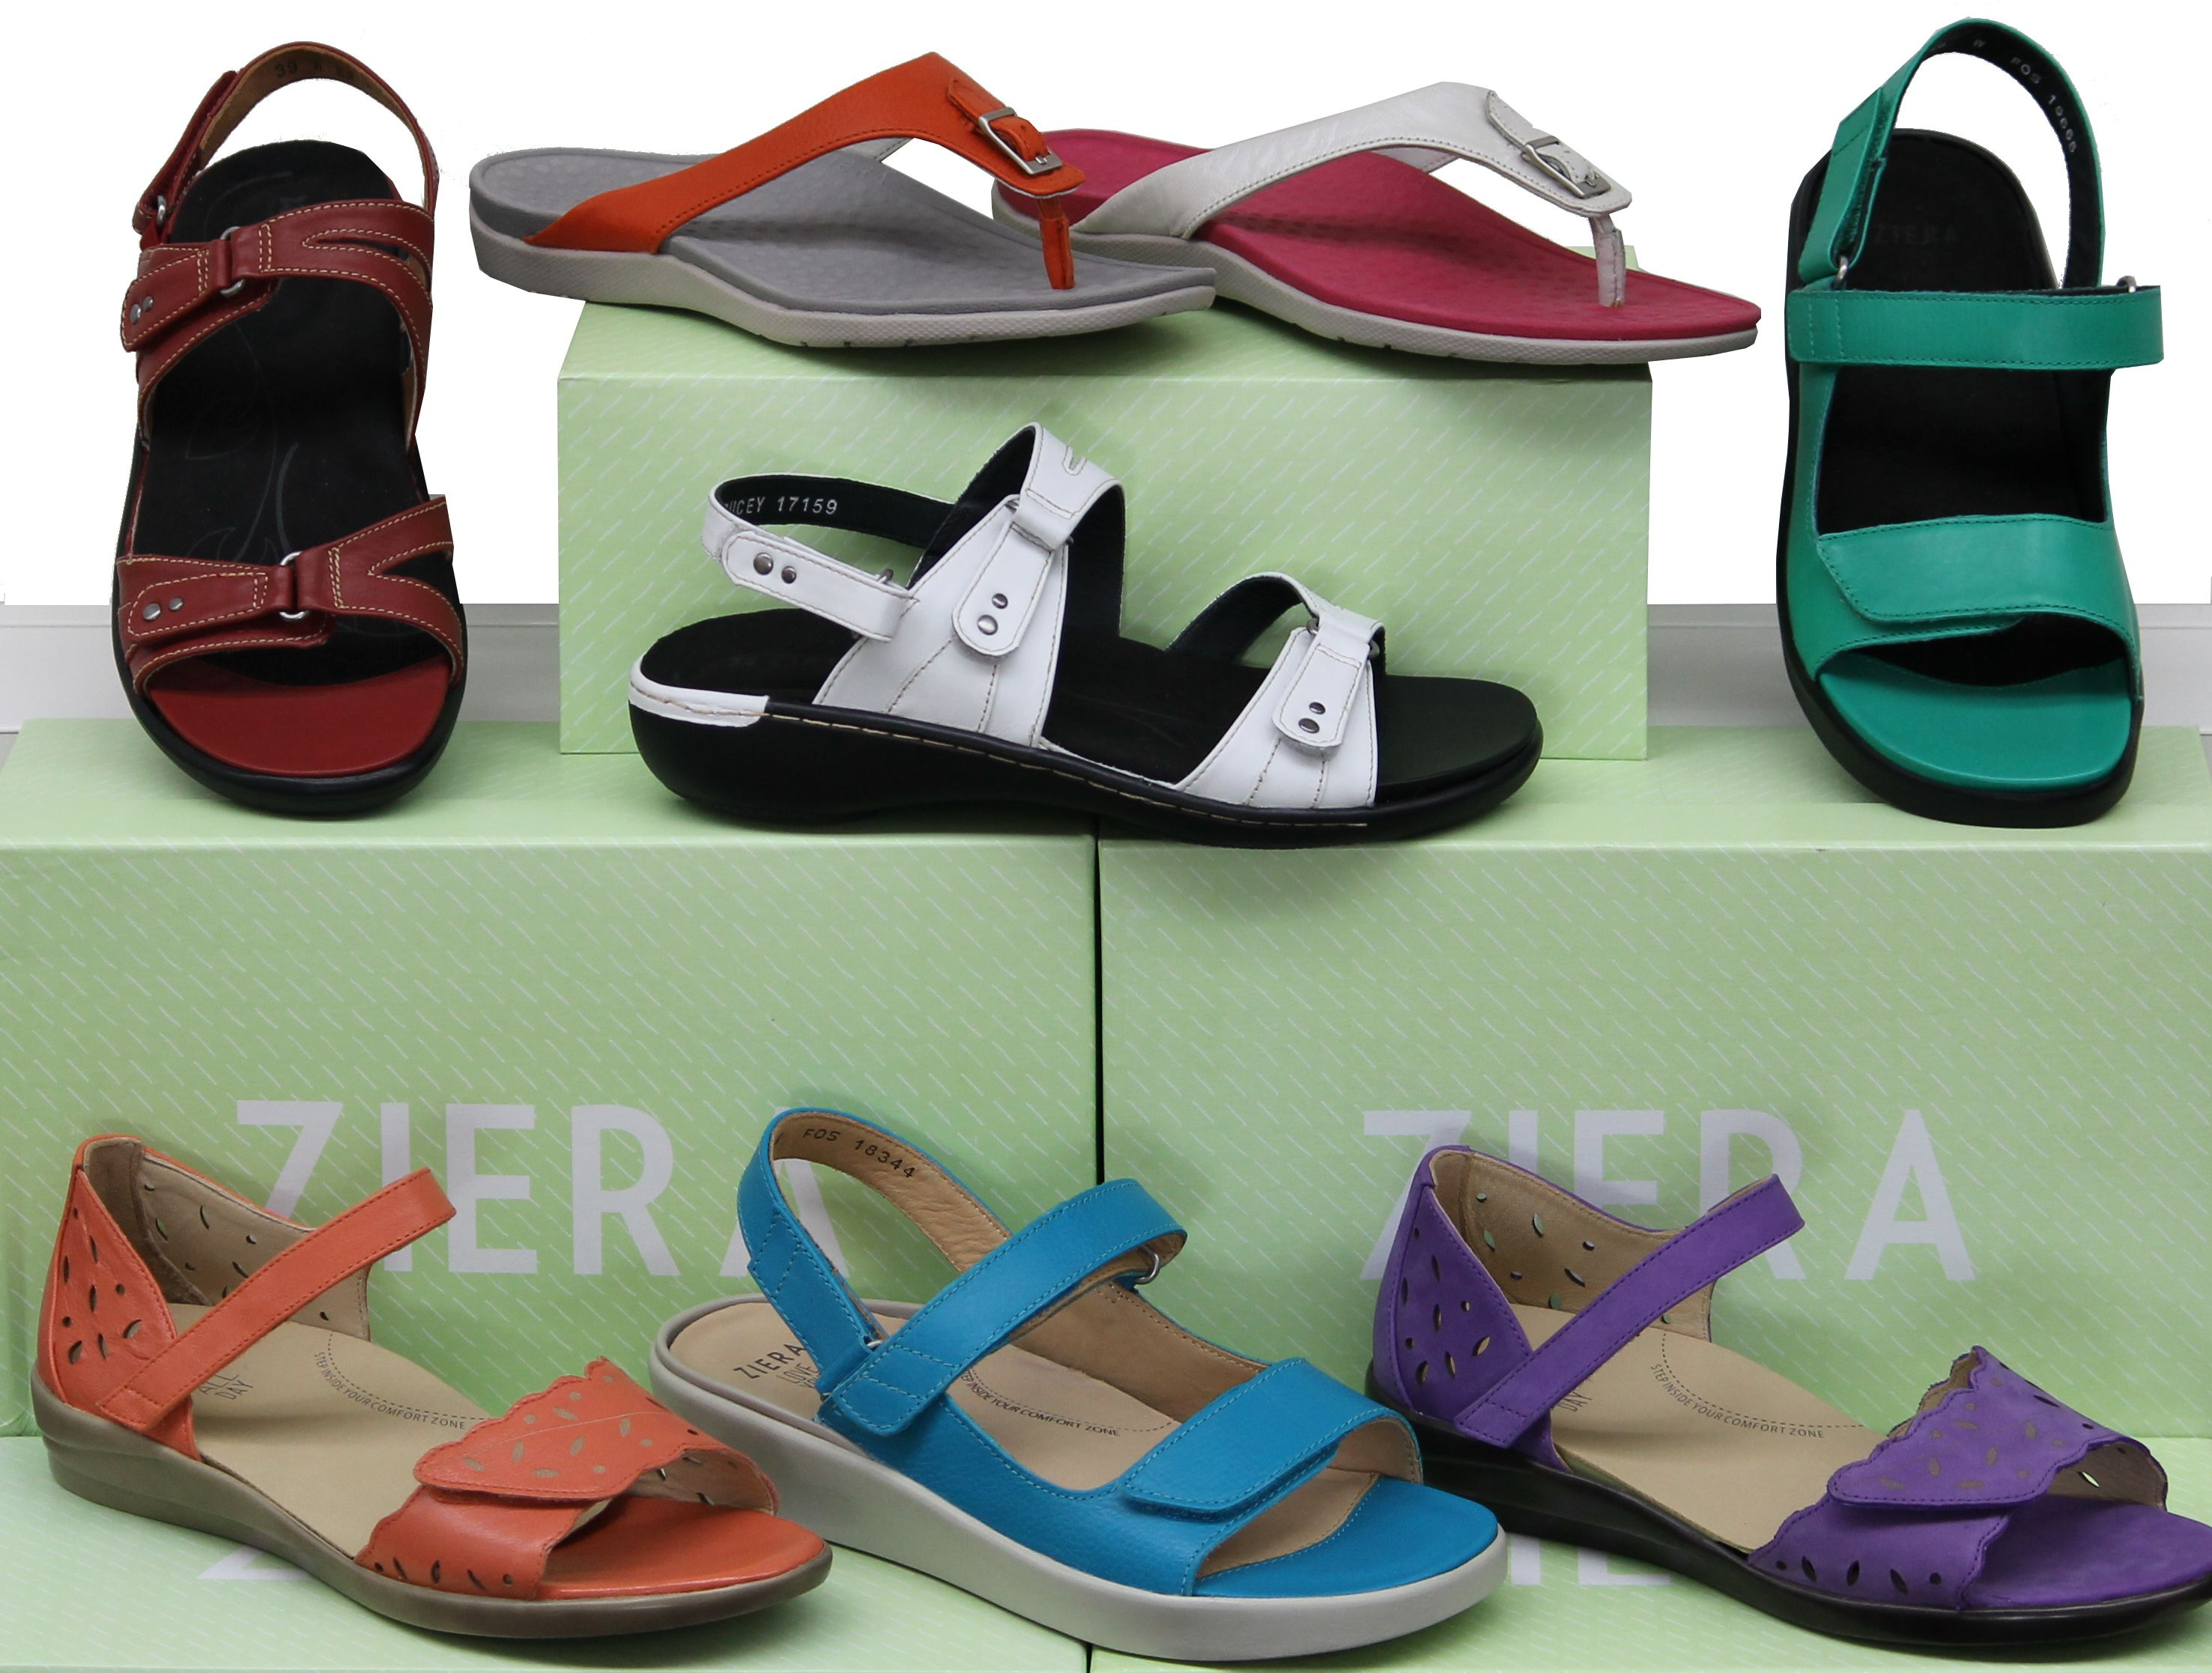 Lovely sandals from Ziera! Lots of